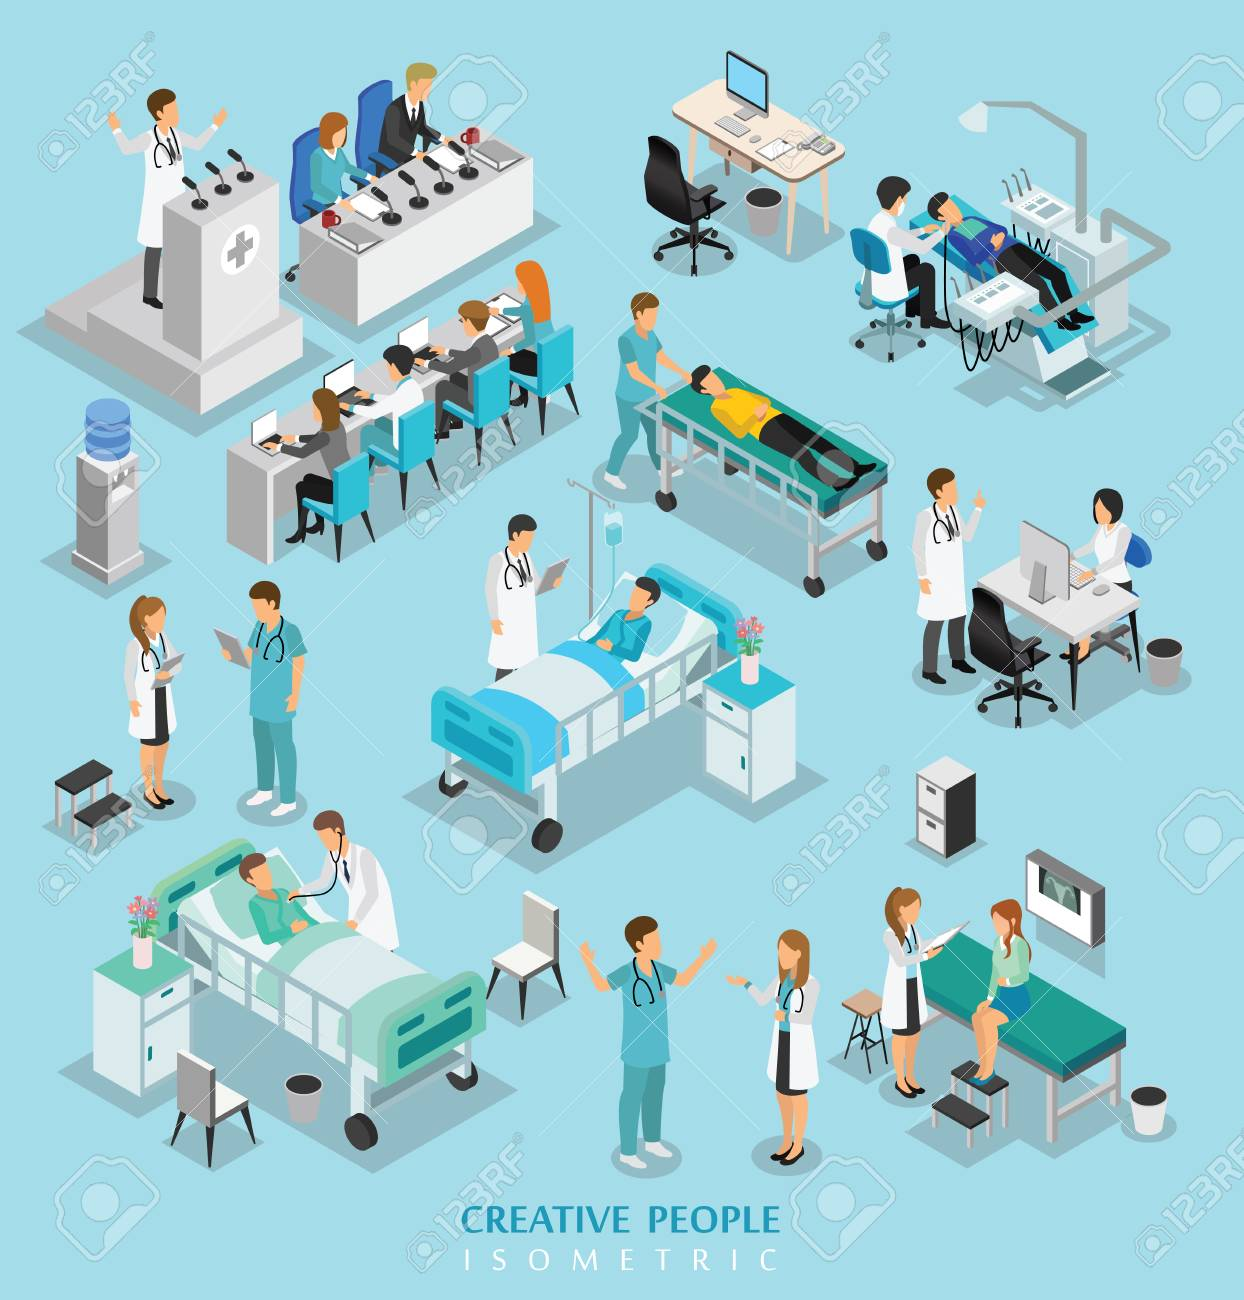 isometric people character on hospital include doctor, nurse, man and woman - 110214366